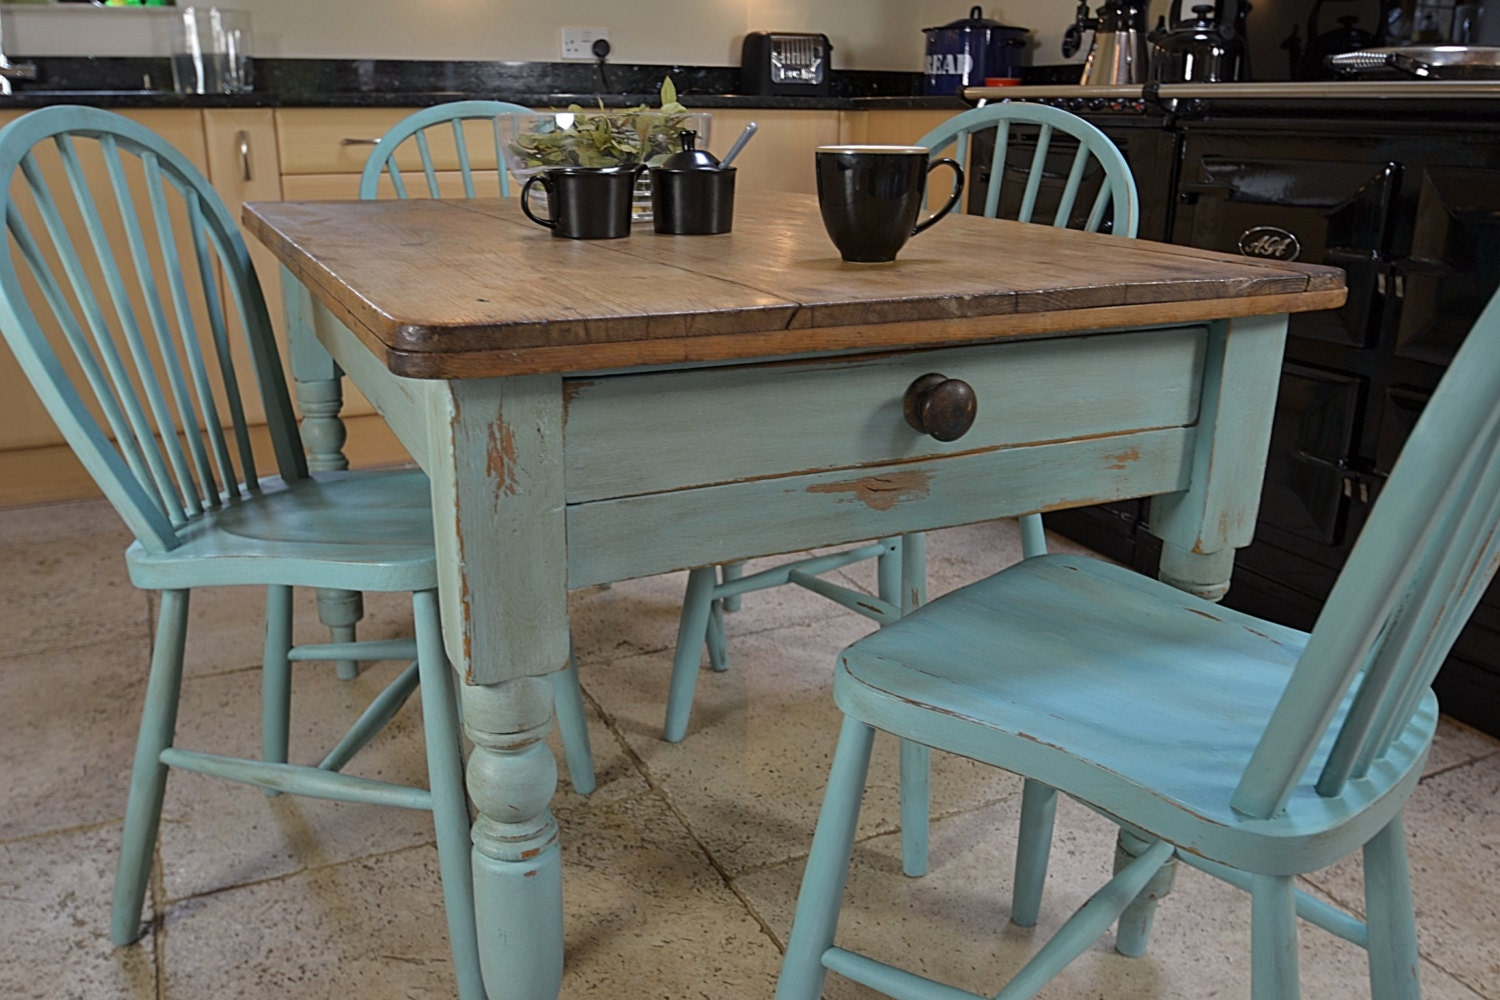 Shabby Chic Breakfast Table: Shabby Chic Farmhouse Rustic Dining Table With 4 Stickback